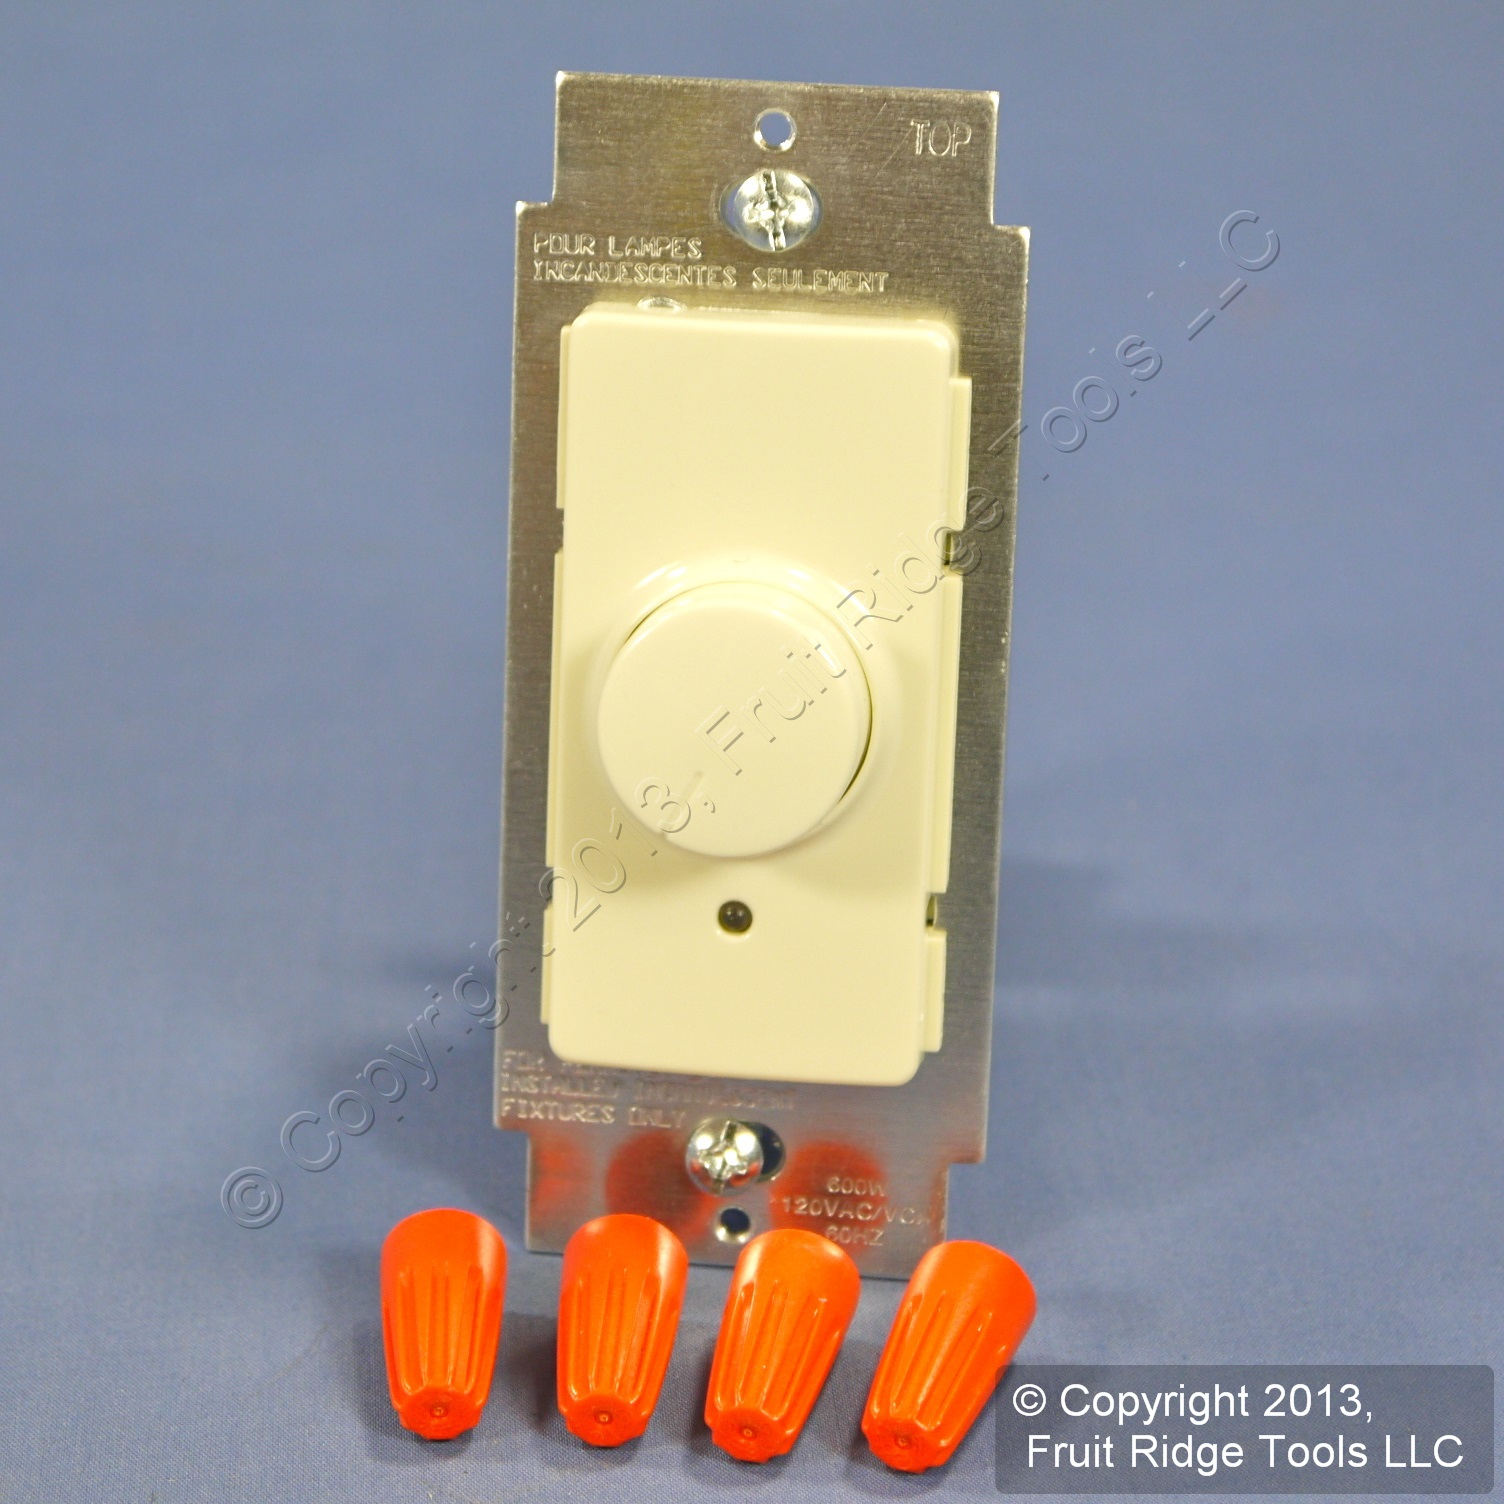 LRPI06 1LA EA 3 leviton illumatech almond push on off preset rotary dimmer light leviton 5625 wiring diagram at soozxer.org